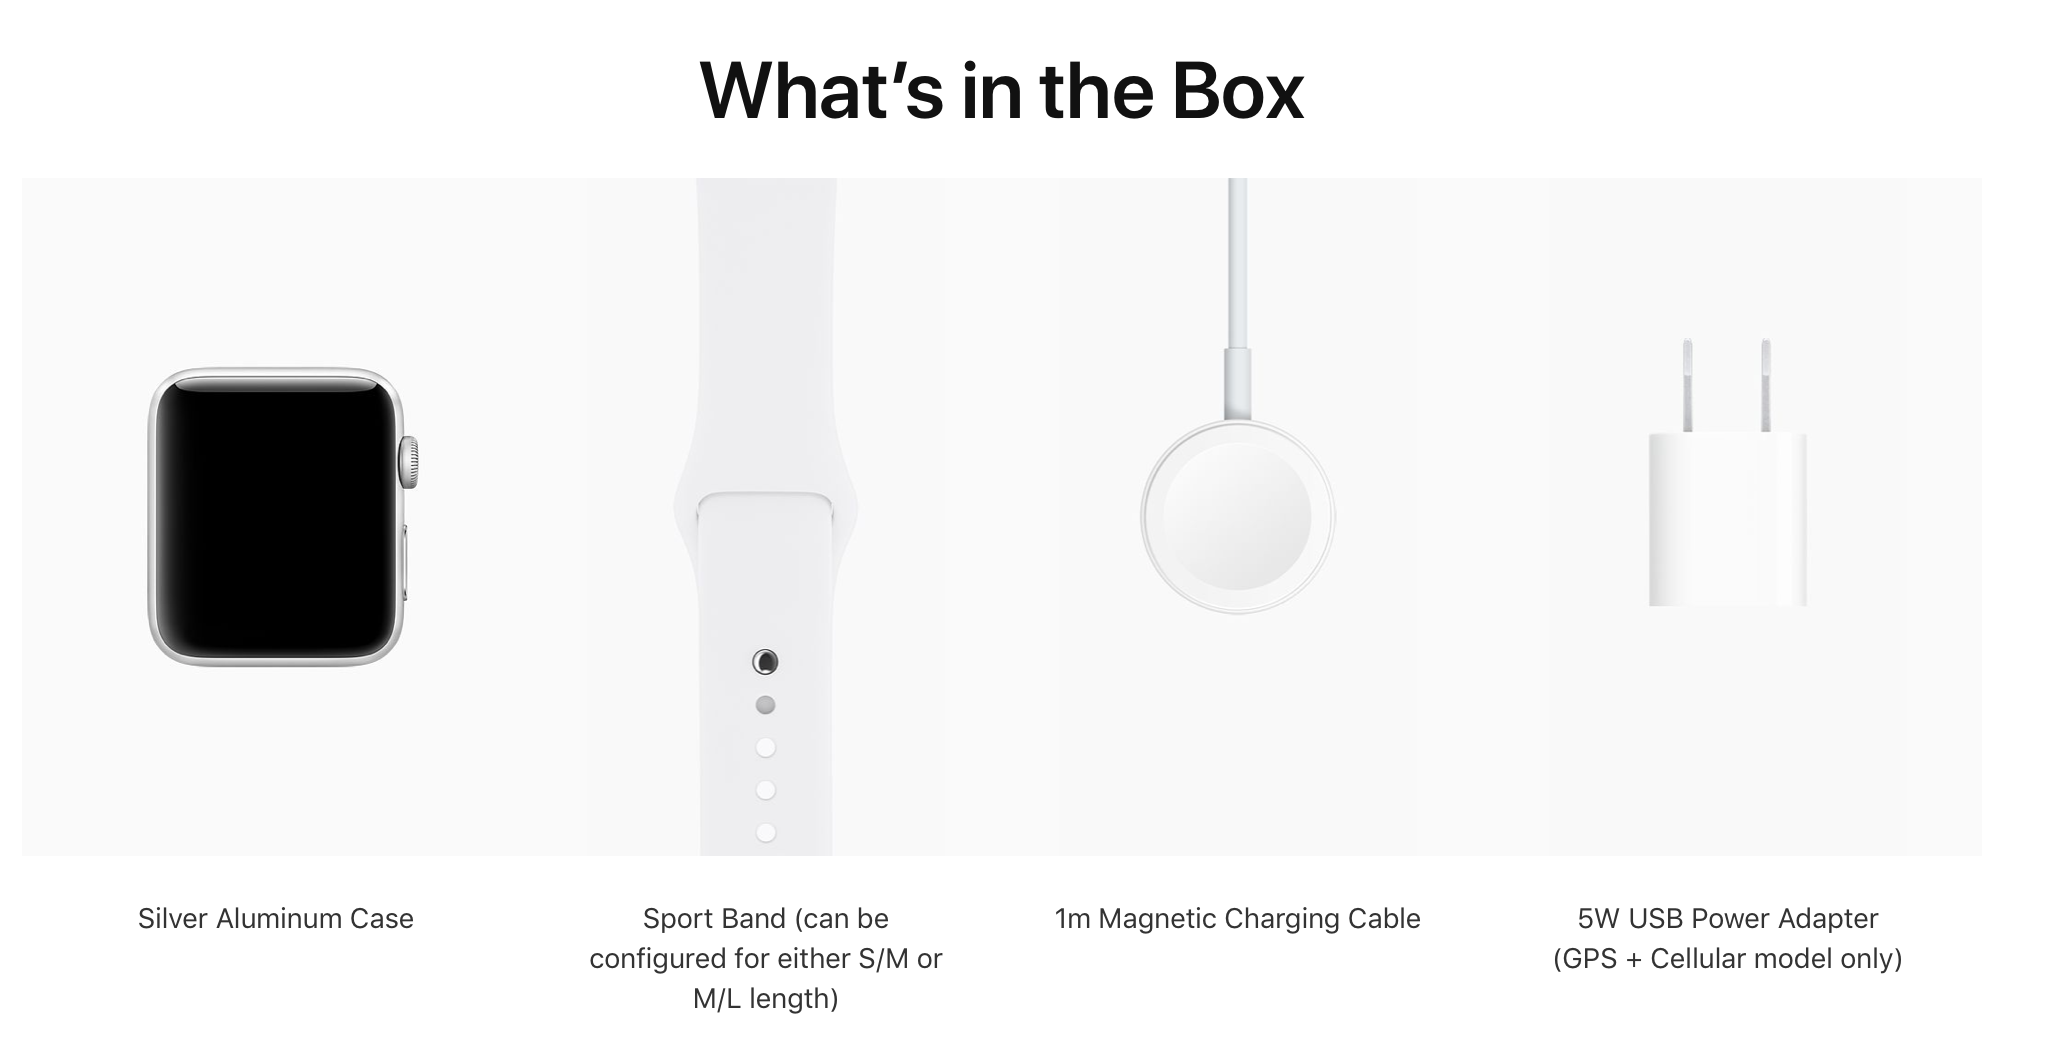 Series 4 box wraps Apple Watch and band separately, new ...